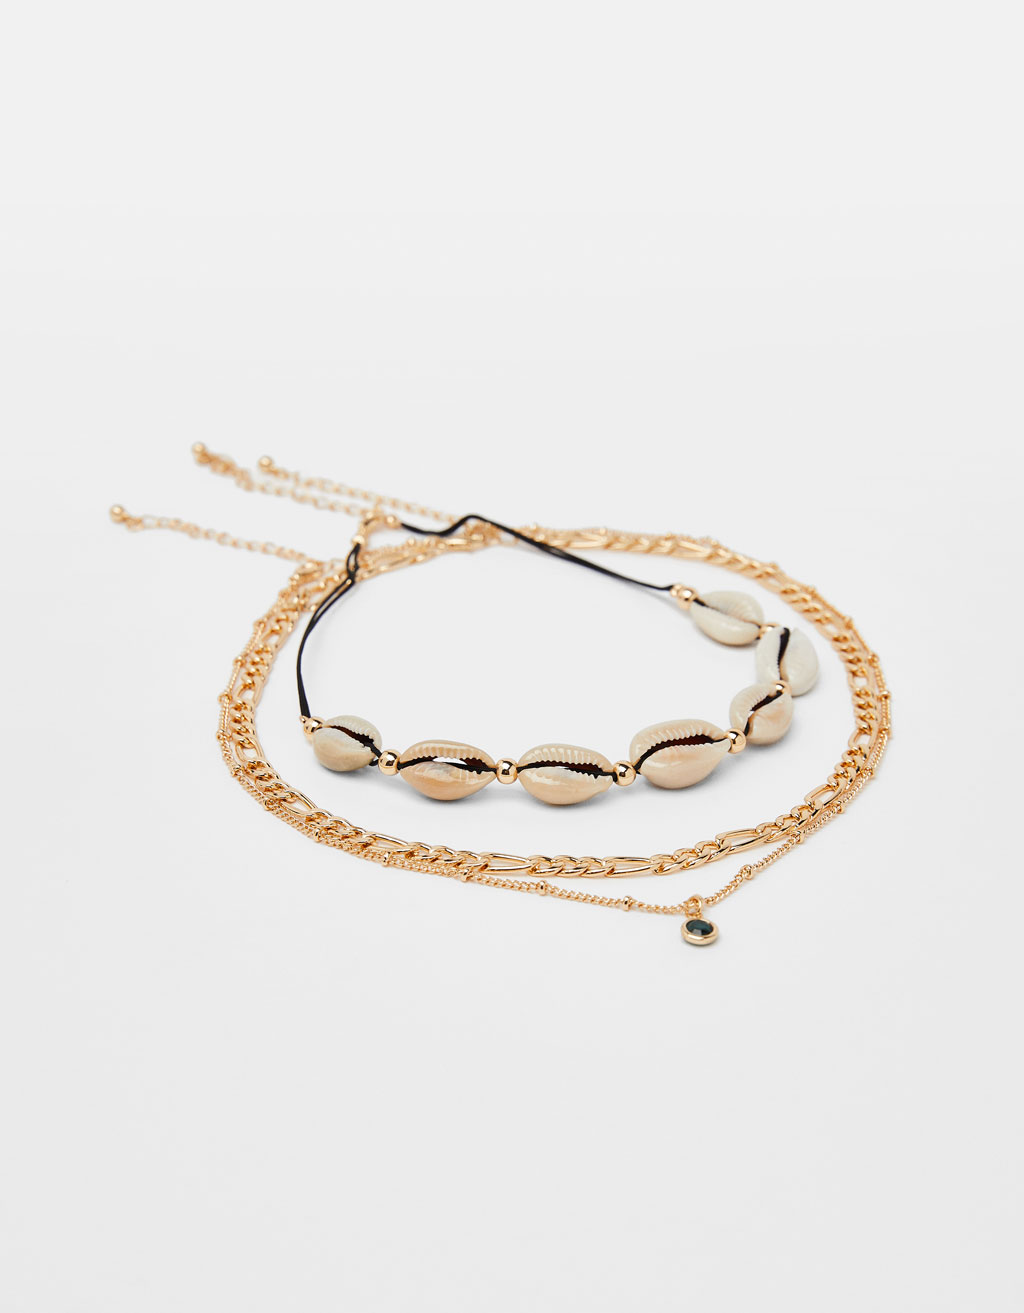 Chain and seashell choker necklace